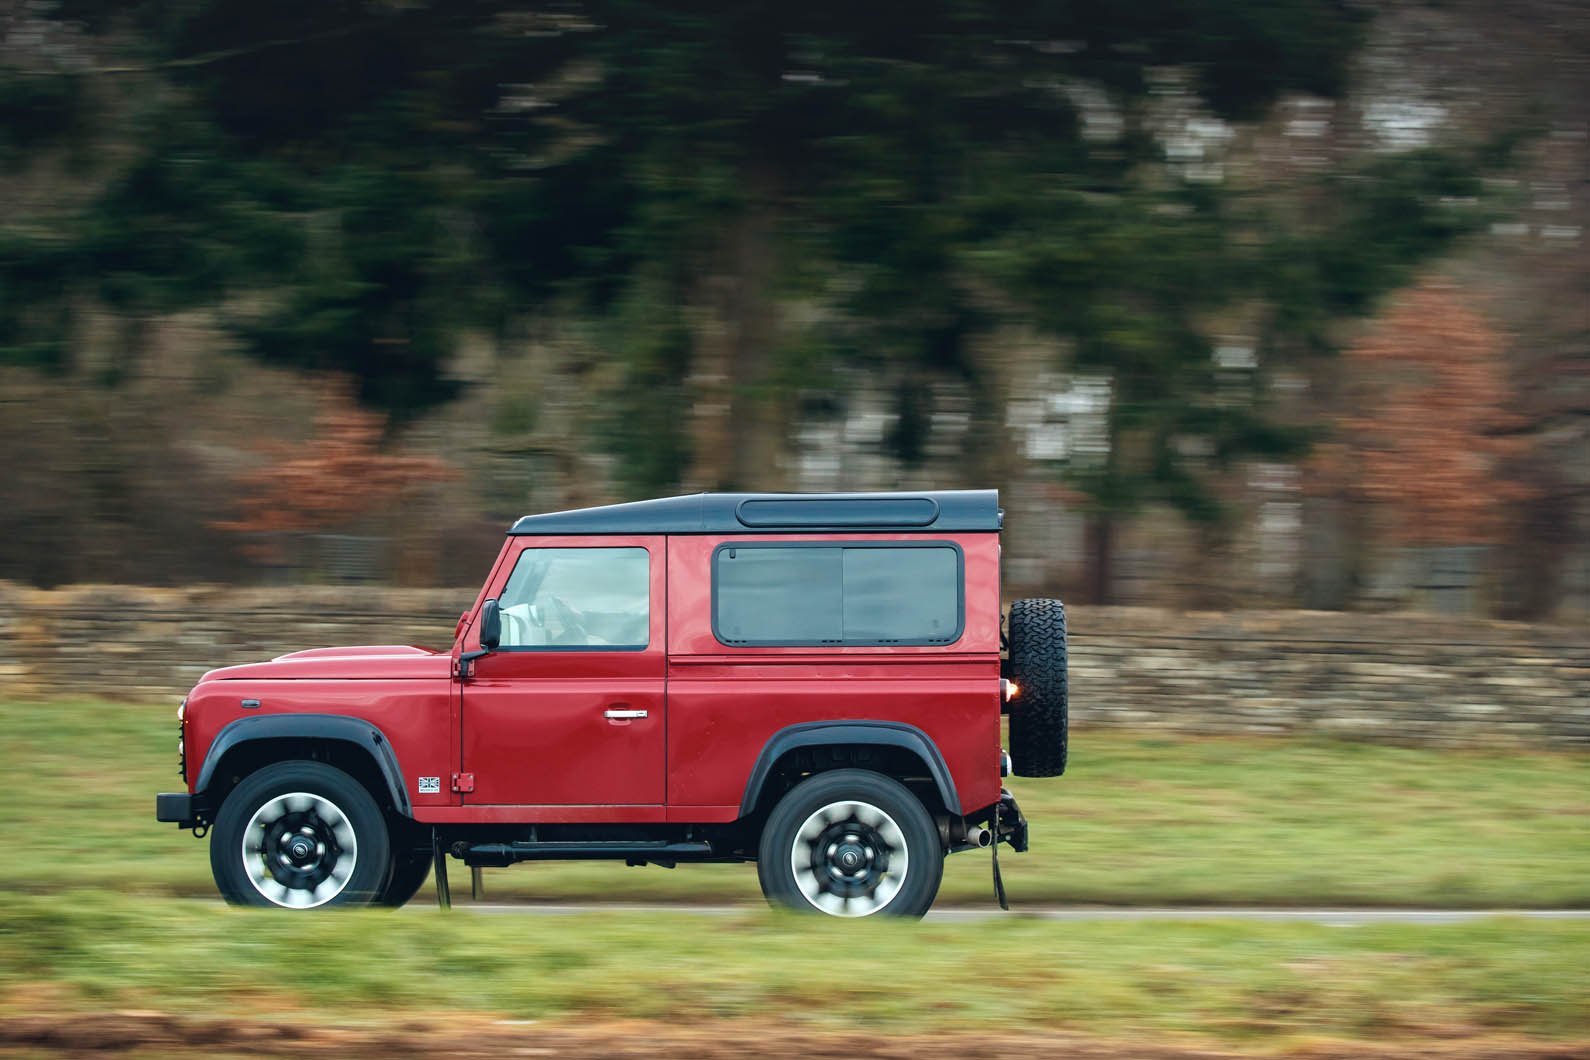 https://www.autocar.co.uk/sites/autocar.co.uk/files/images/car-reviews/first-drives/legacy/lr_classic_defender_worksv8_170118_06.jpg